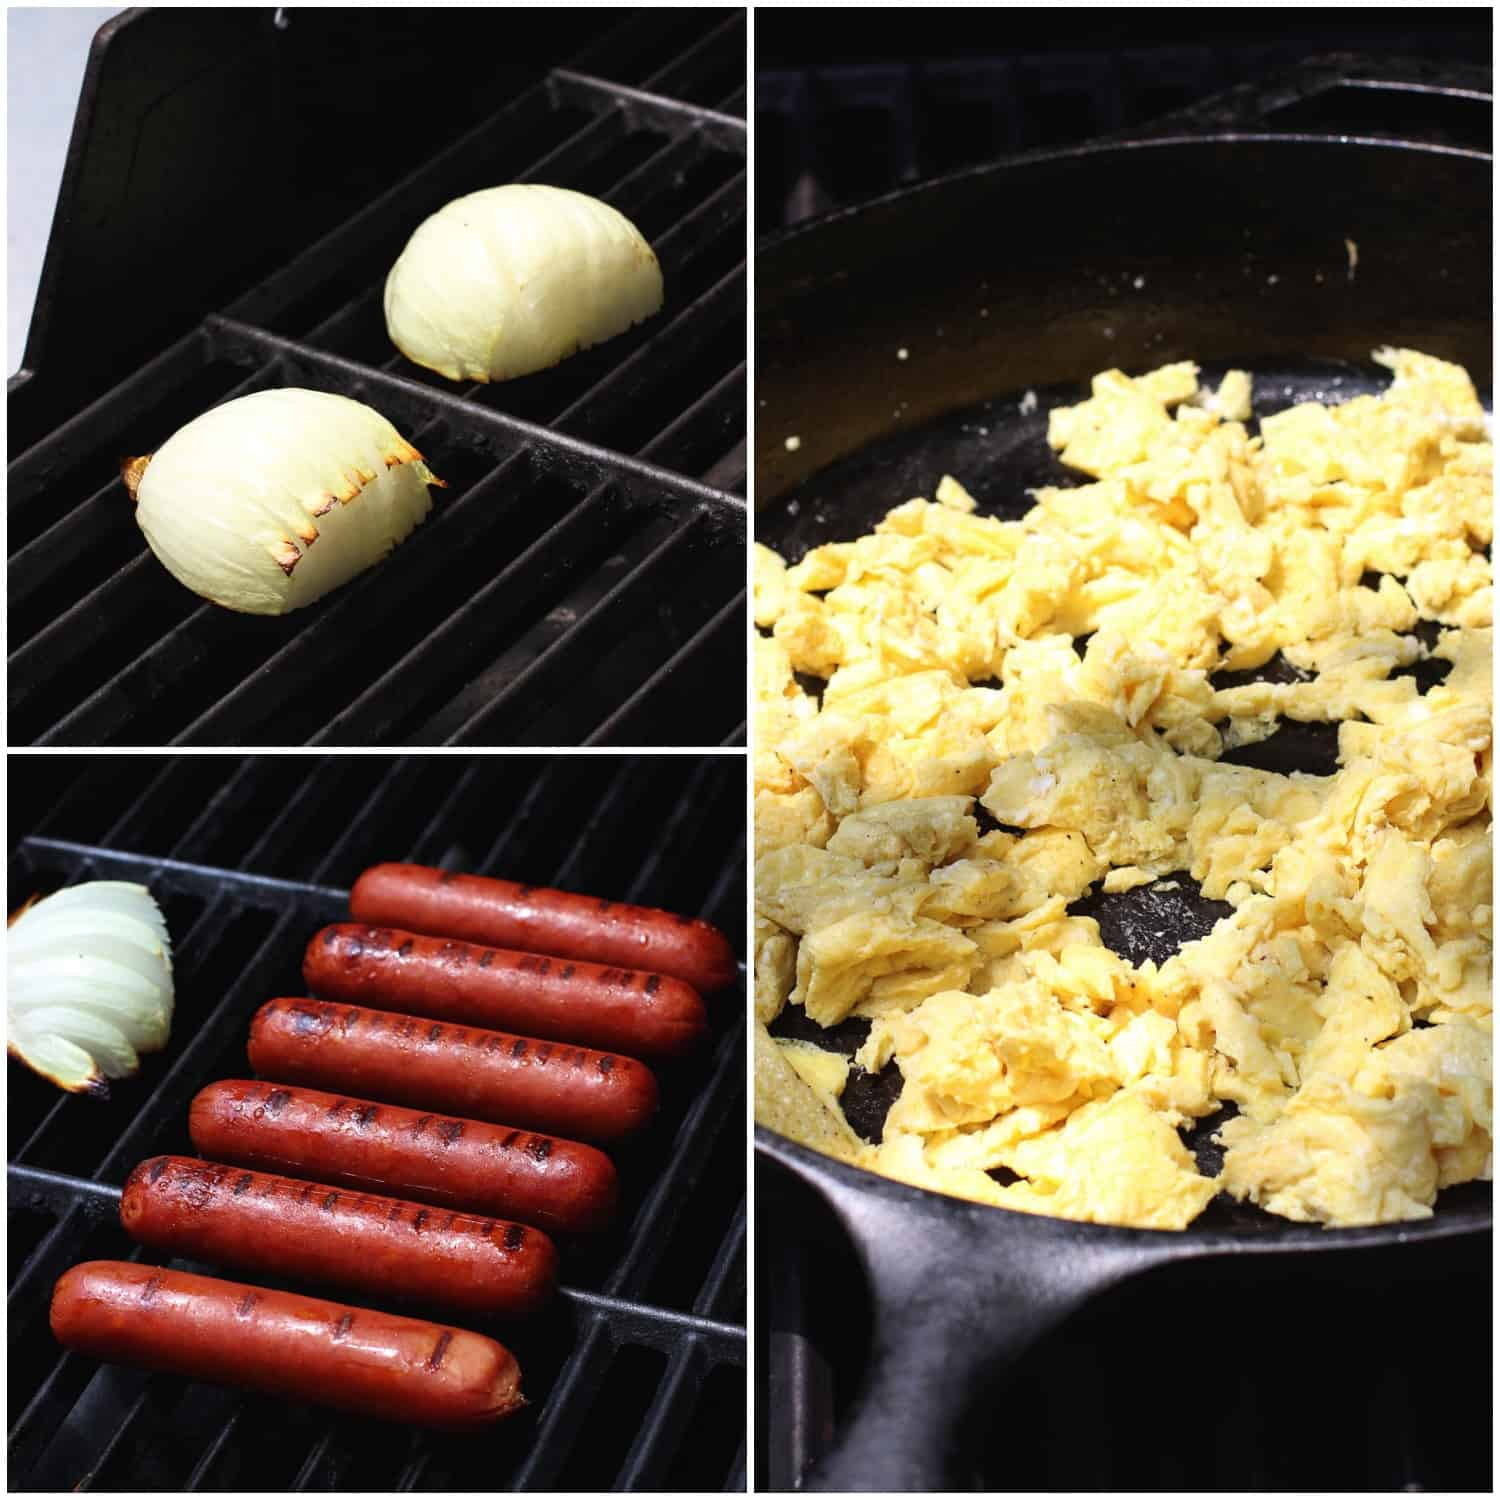 Onions, sausages, and a cast iron pan fill of scrambled eggs all on the grill.